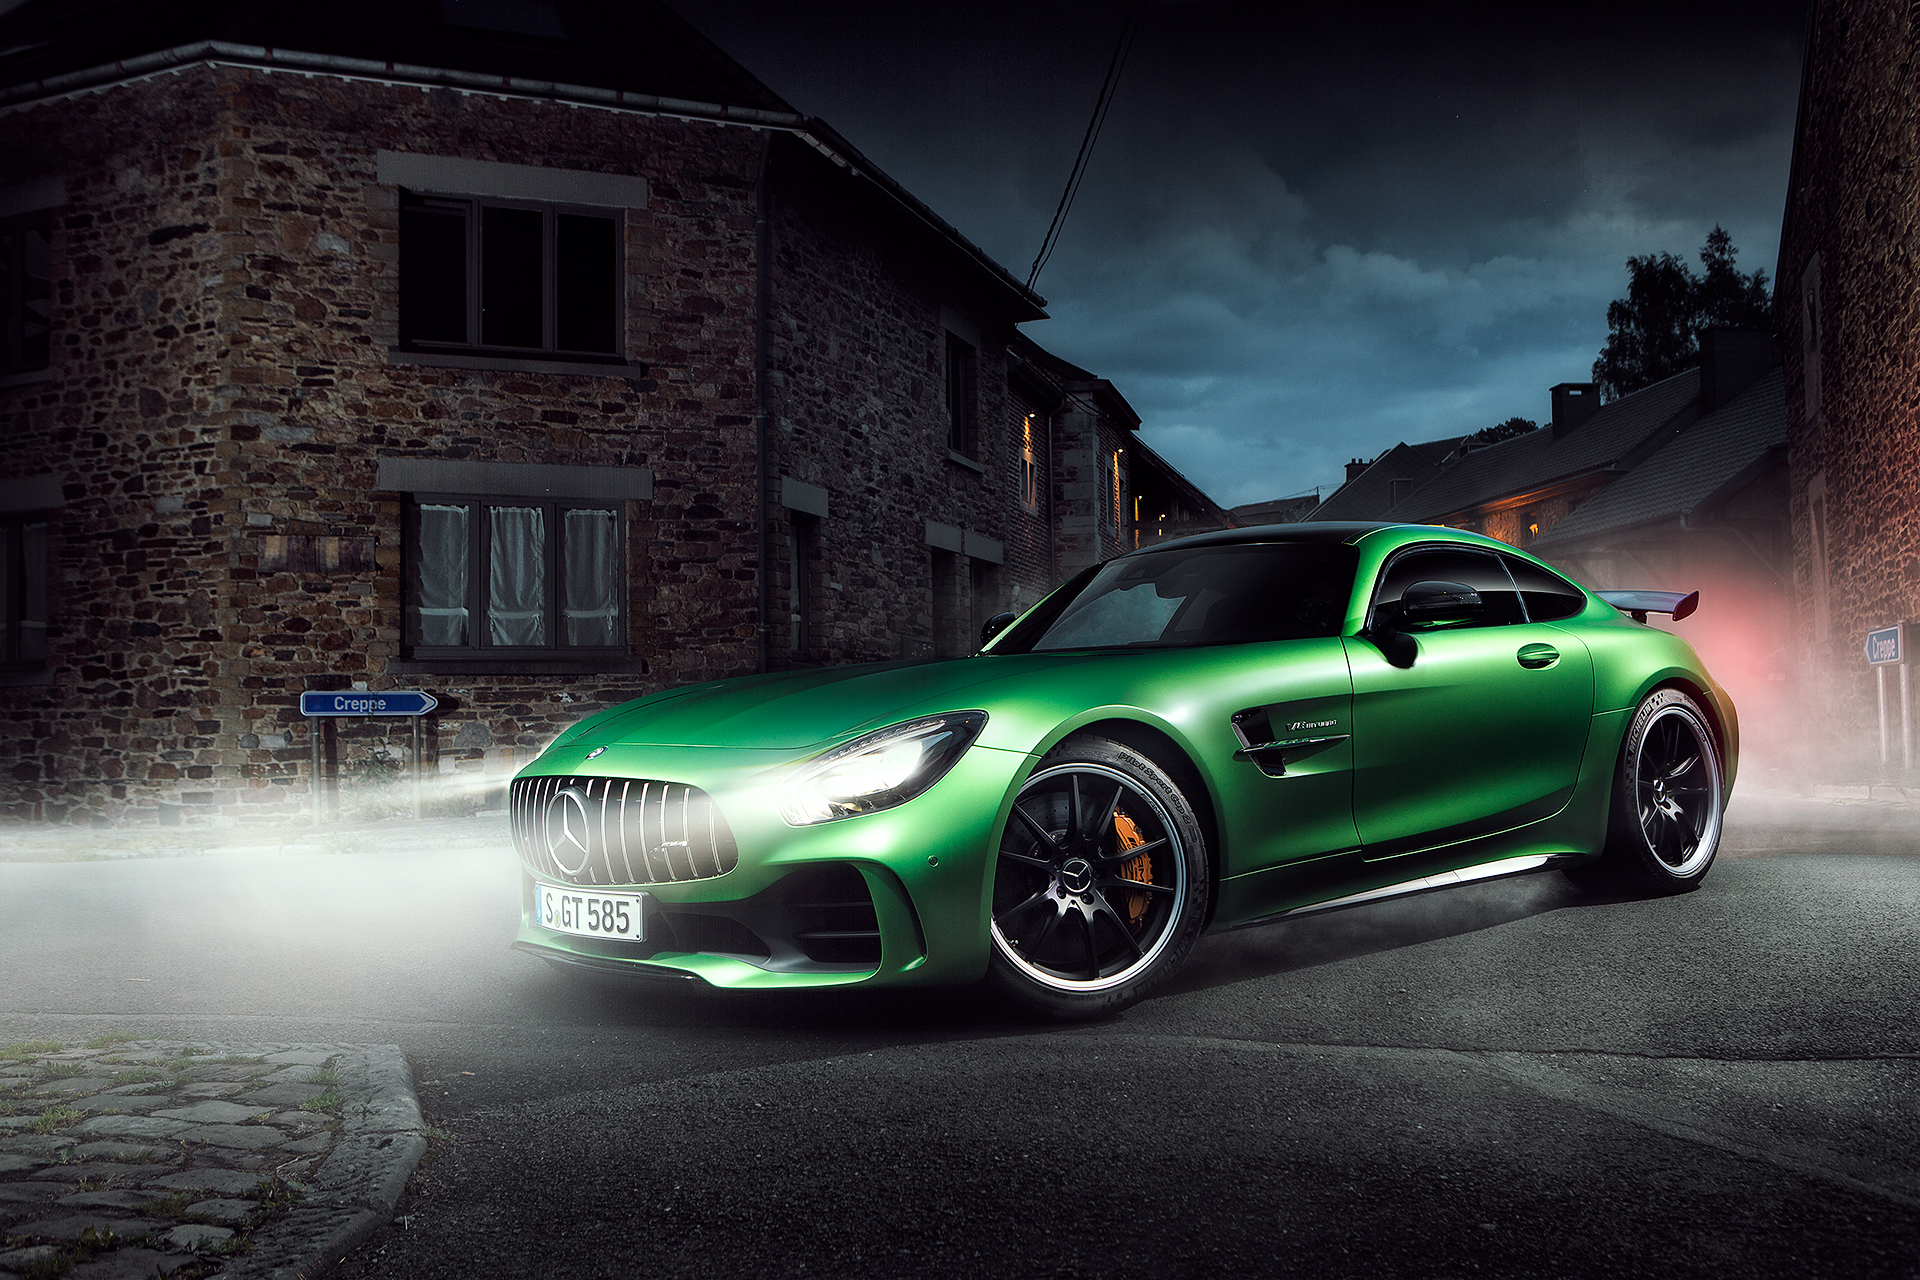 Mercedes Benz AMG GT R, HD Cars, 4k Wallpapers, Images ...